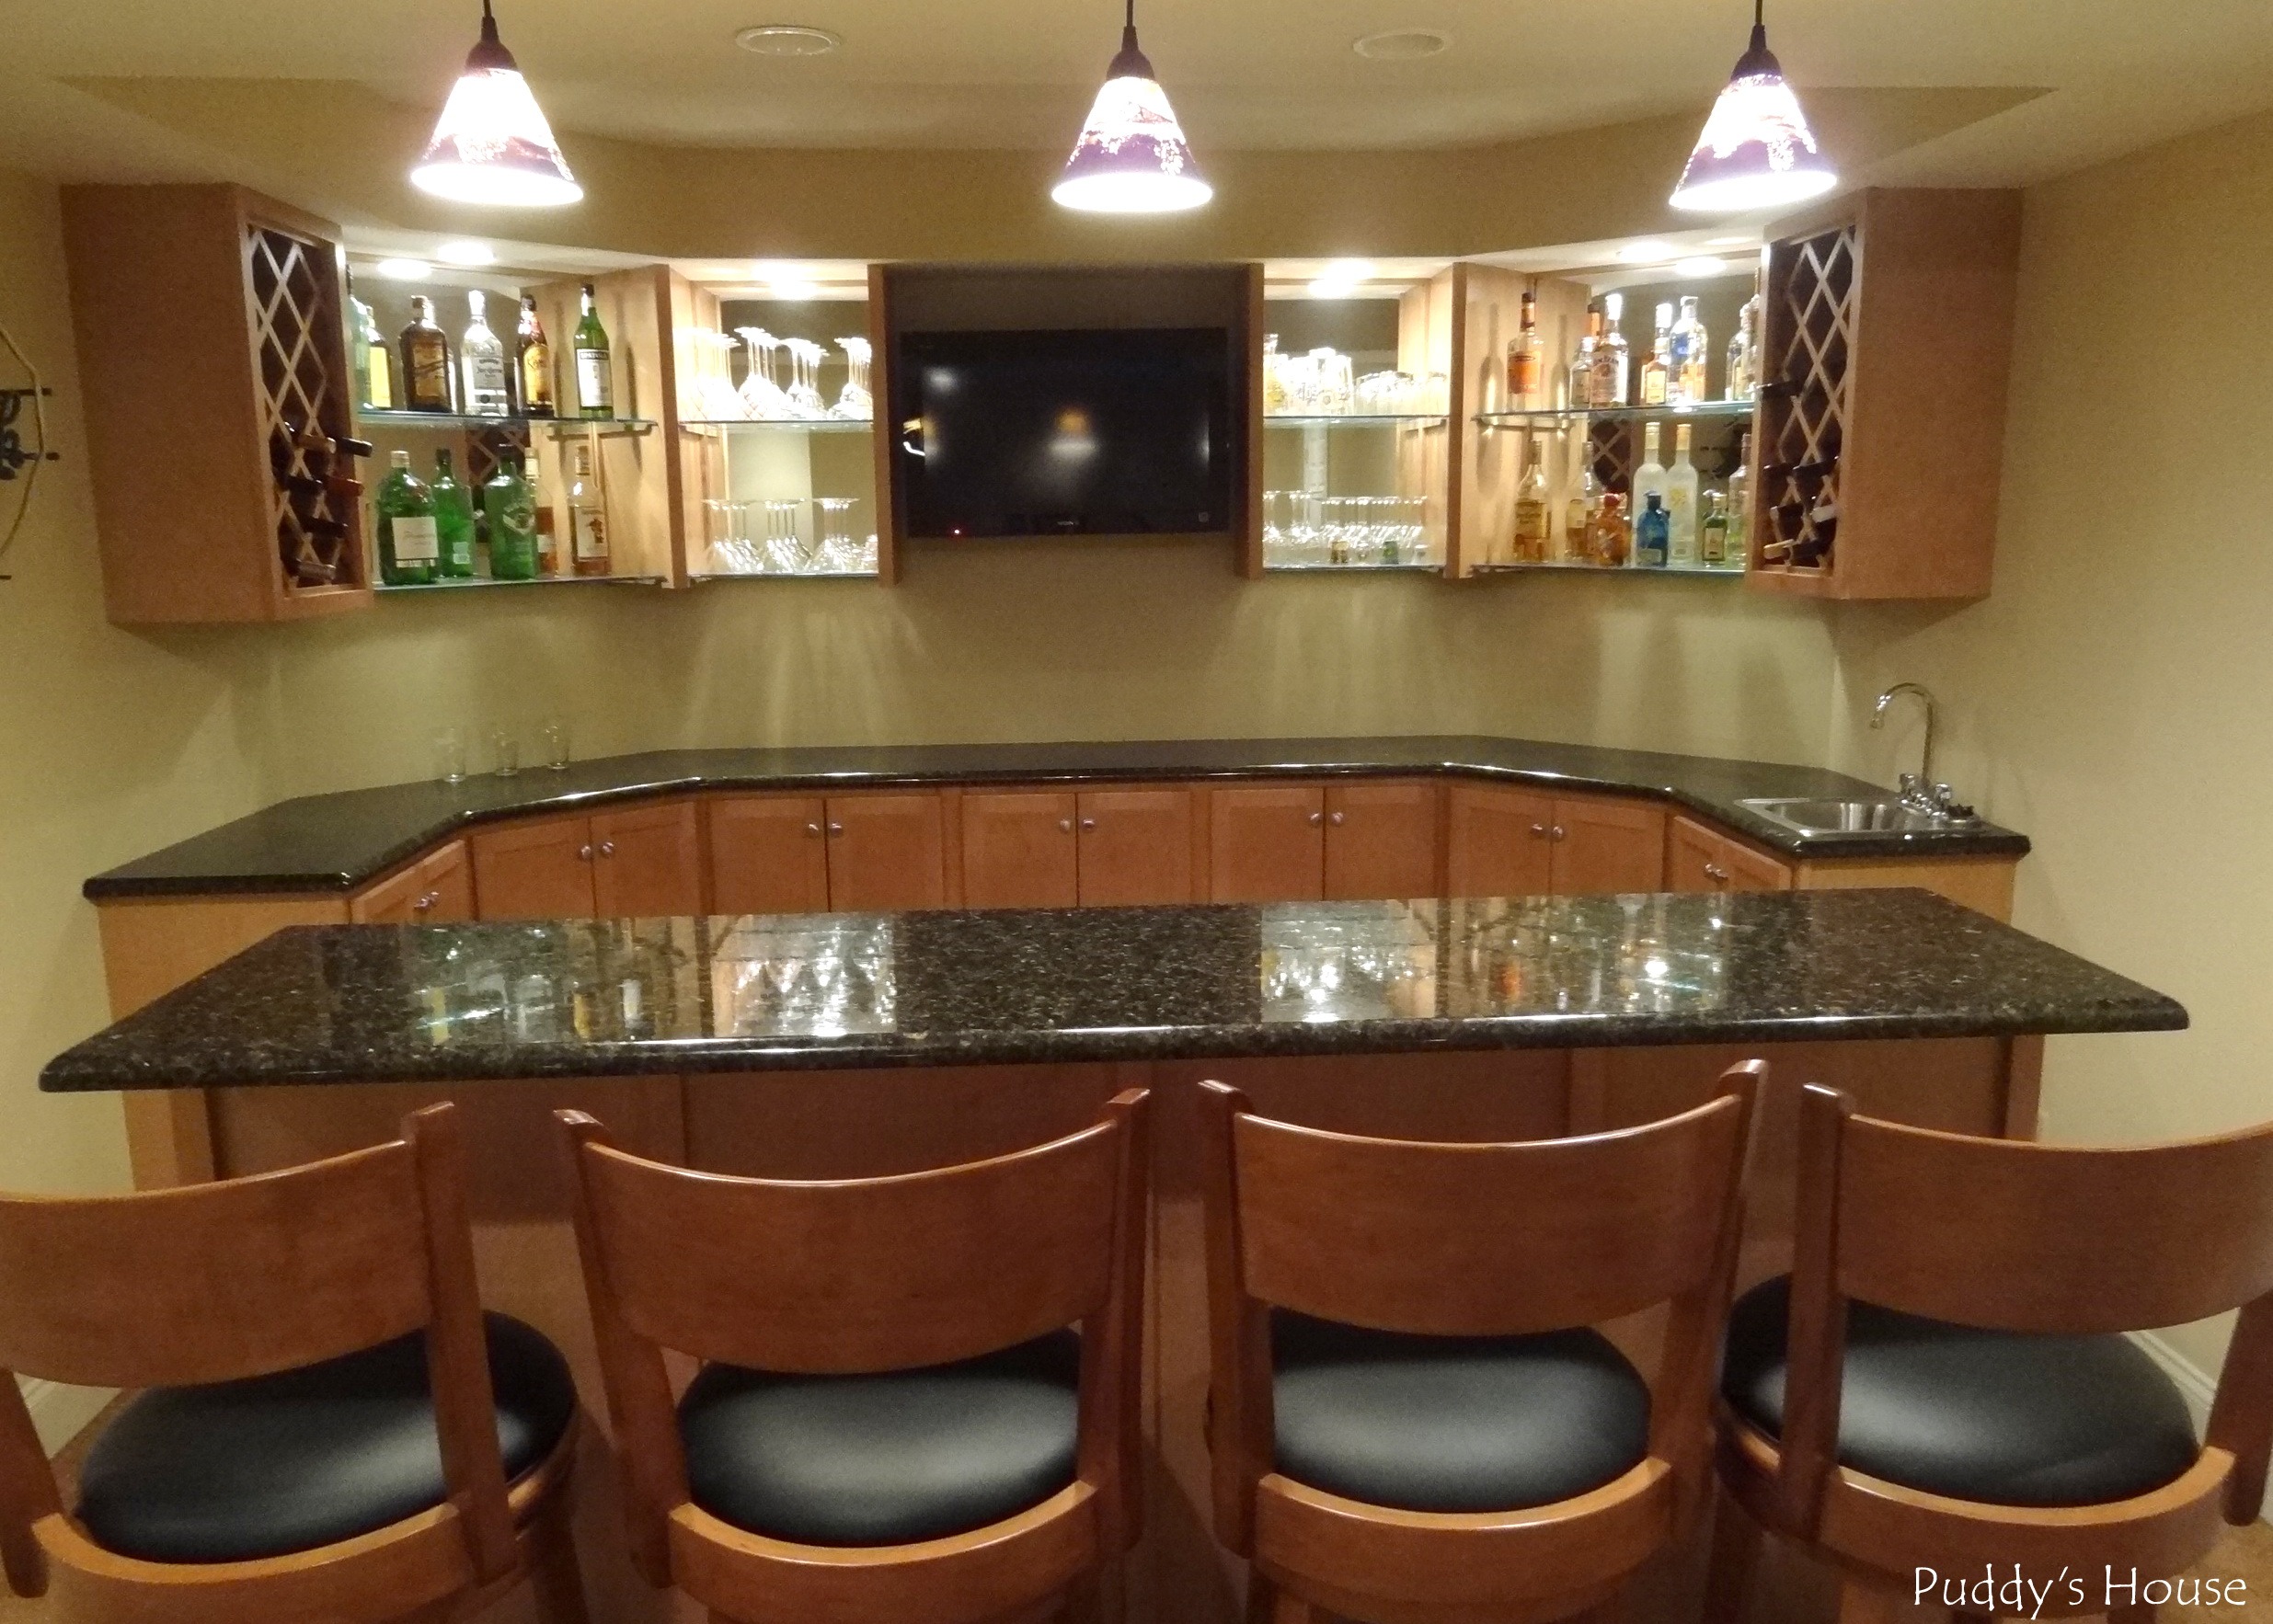 Basement bar diy backsplash puddy 39 s house - Bars for the house ...